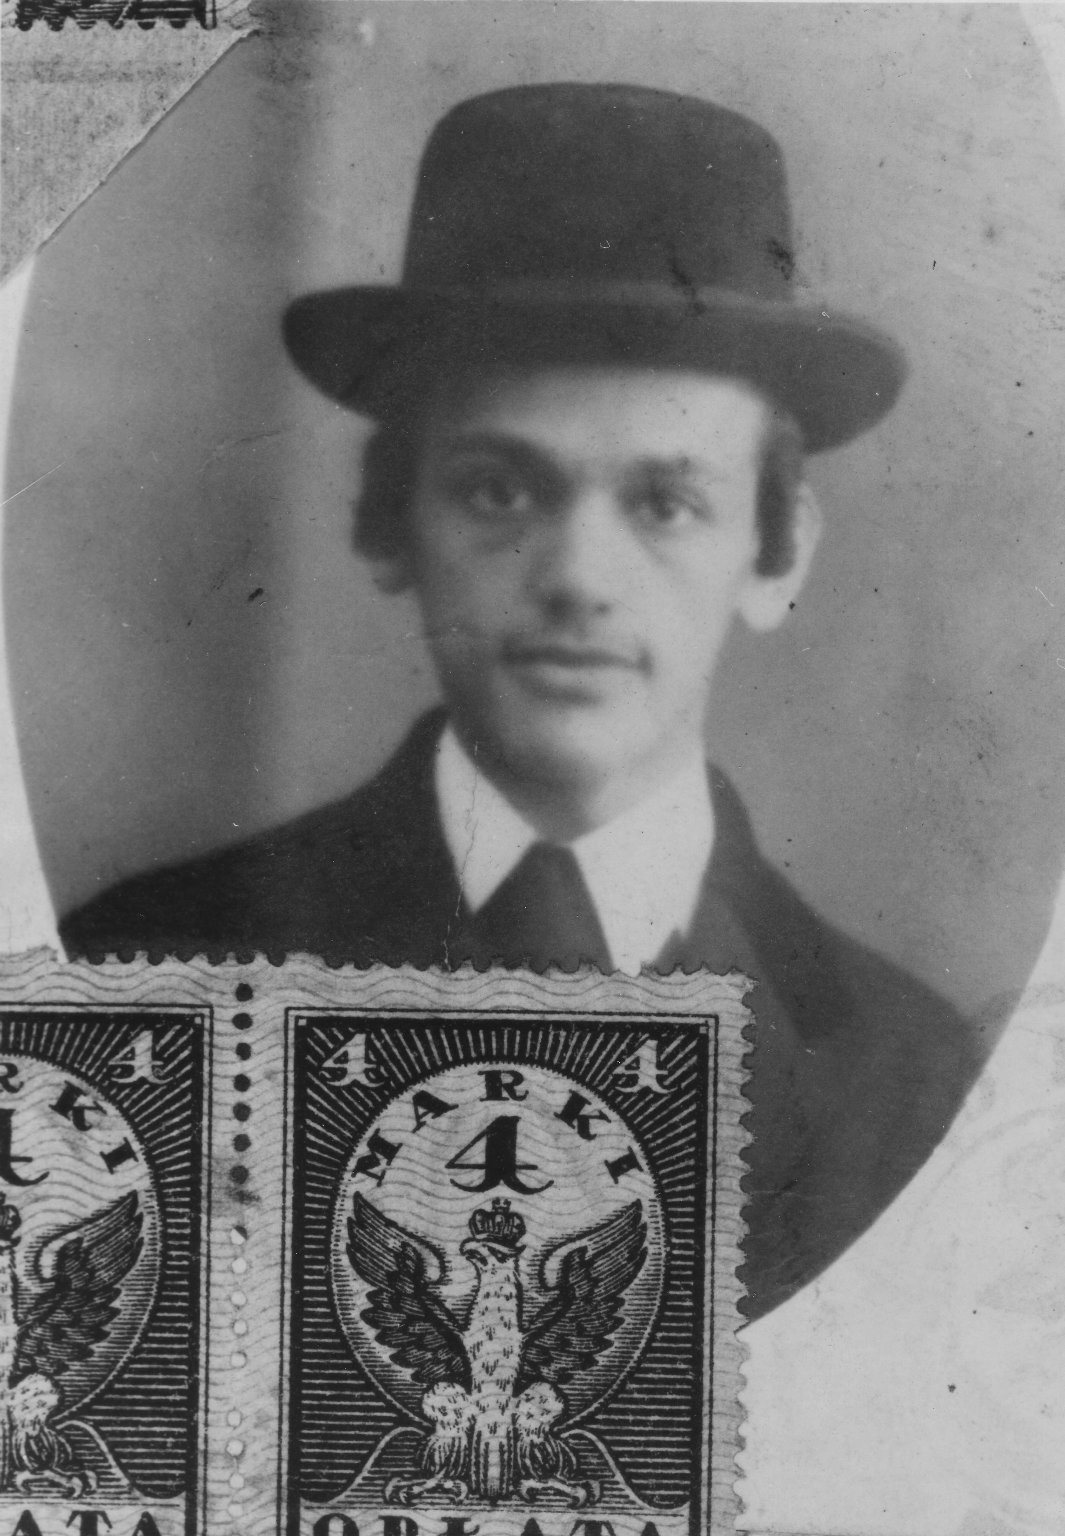 Photo of Shlomo Schachter as a young Belzer hasid, about 17 years old, ca. 1915.